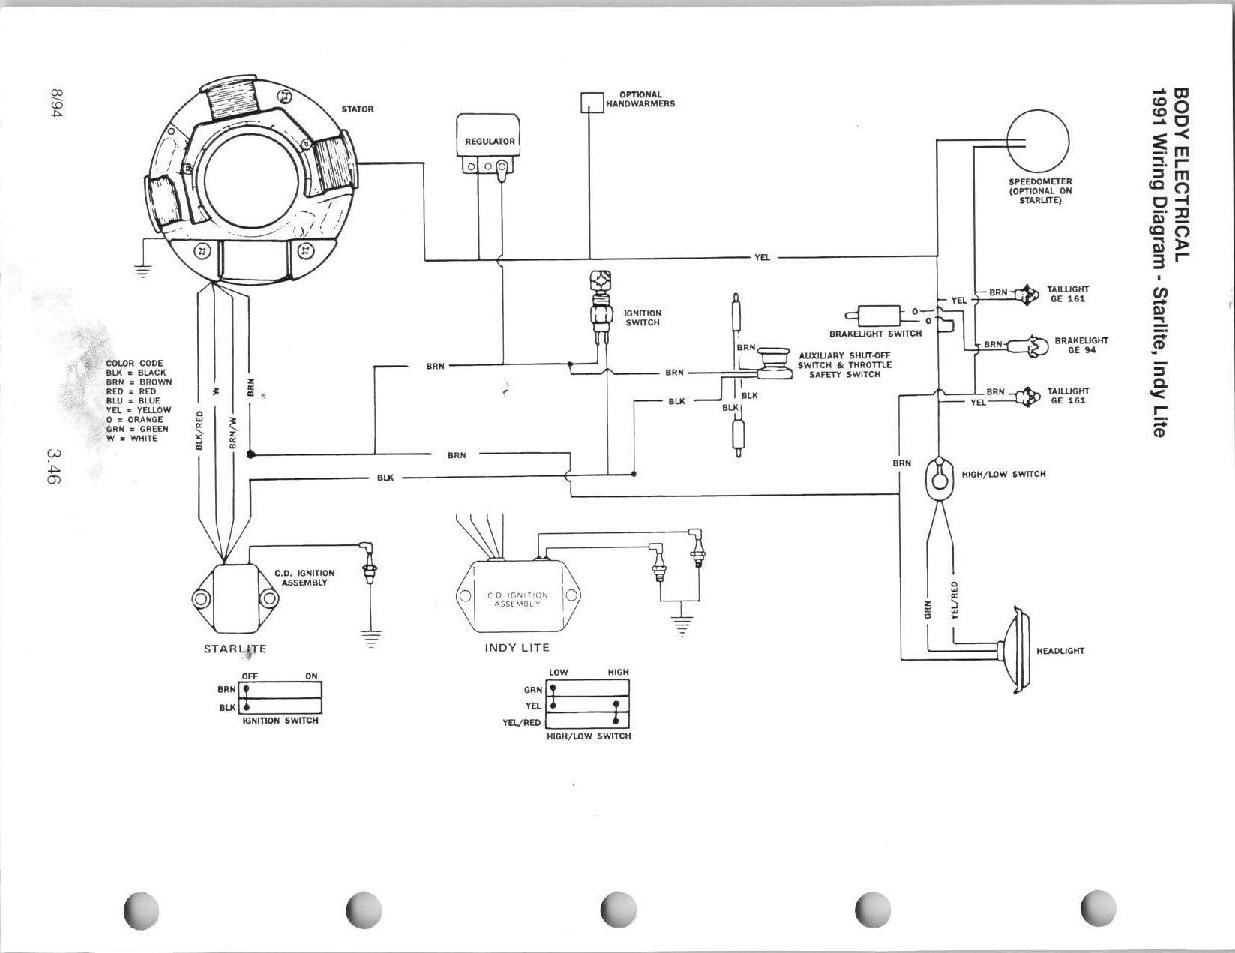 hight resolution of wiring schematic for a 2002 polaris 700 wiring diagrams value wiring diagram polaris ranger 800 wiring diagram polaris